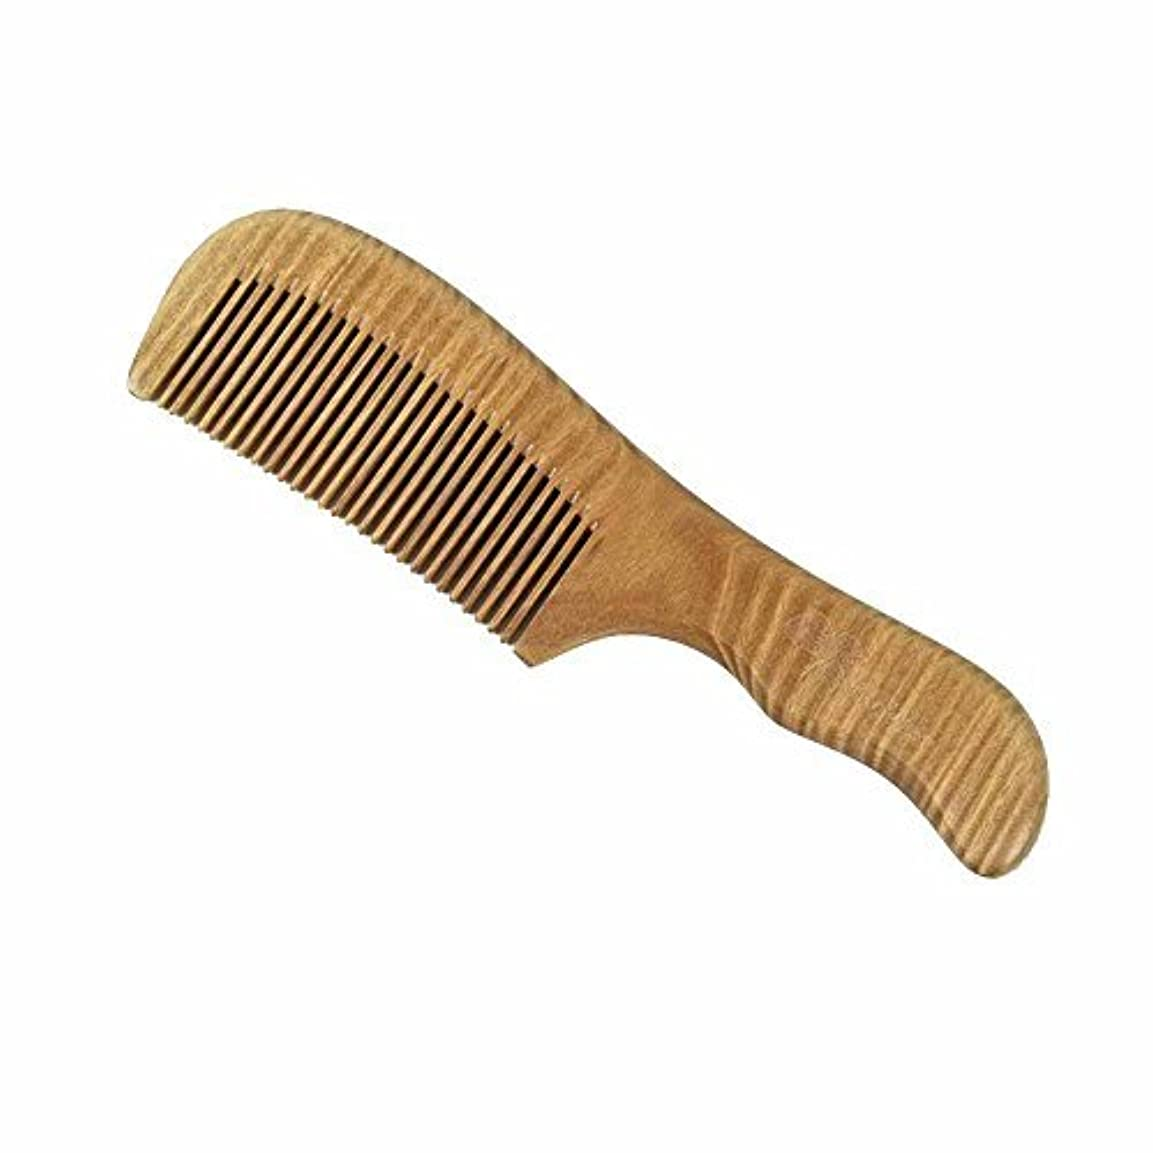 留まるアジテーション縁石Wooden Hair Brush, by GoWoo, Fine Tooth, Detangling, Natural and Handmade, for Men and Women, From Earth to Earth...